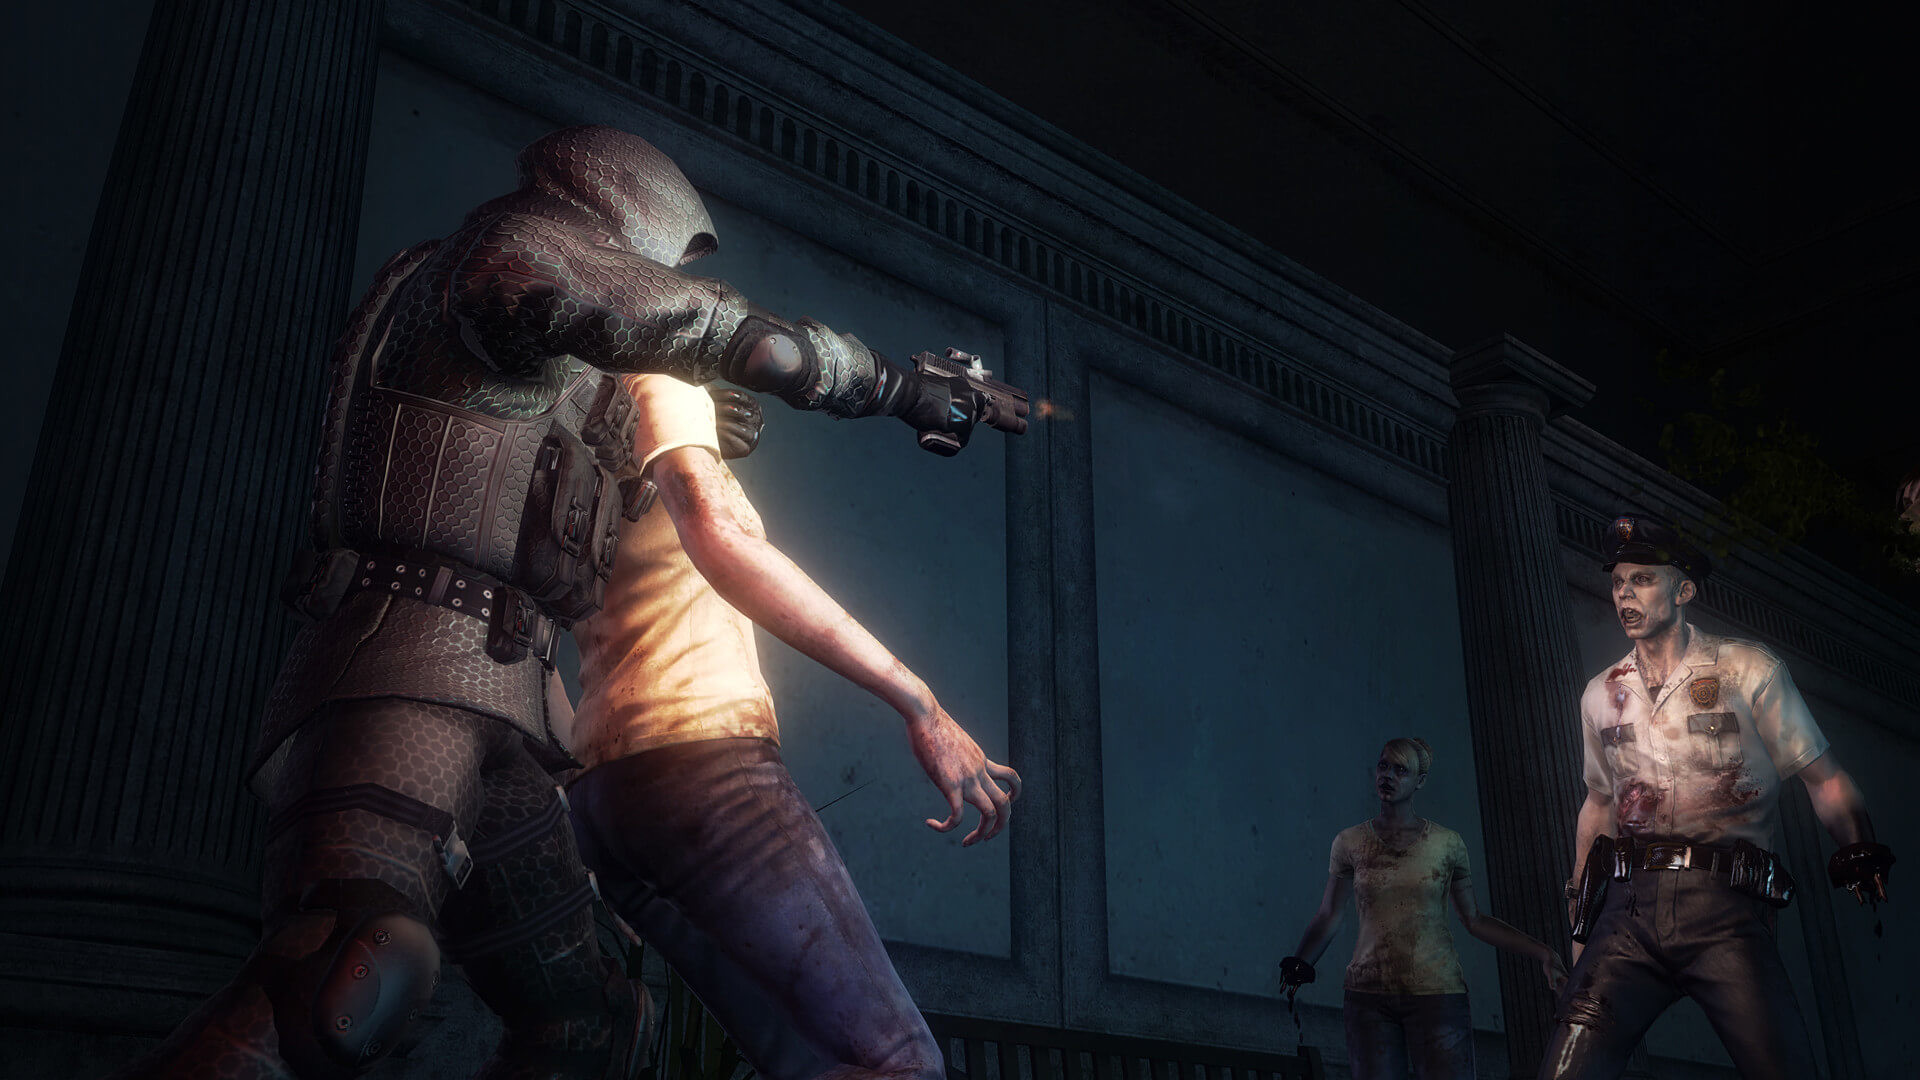 1920x1080 Image result for Resident Evil: Operation Raccoon City